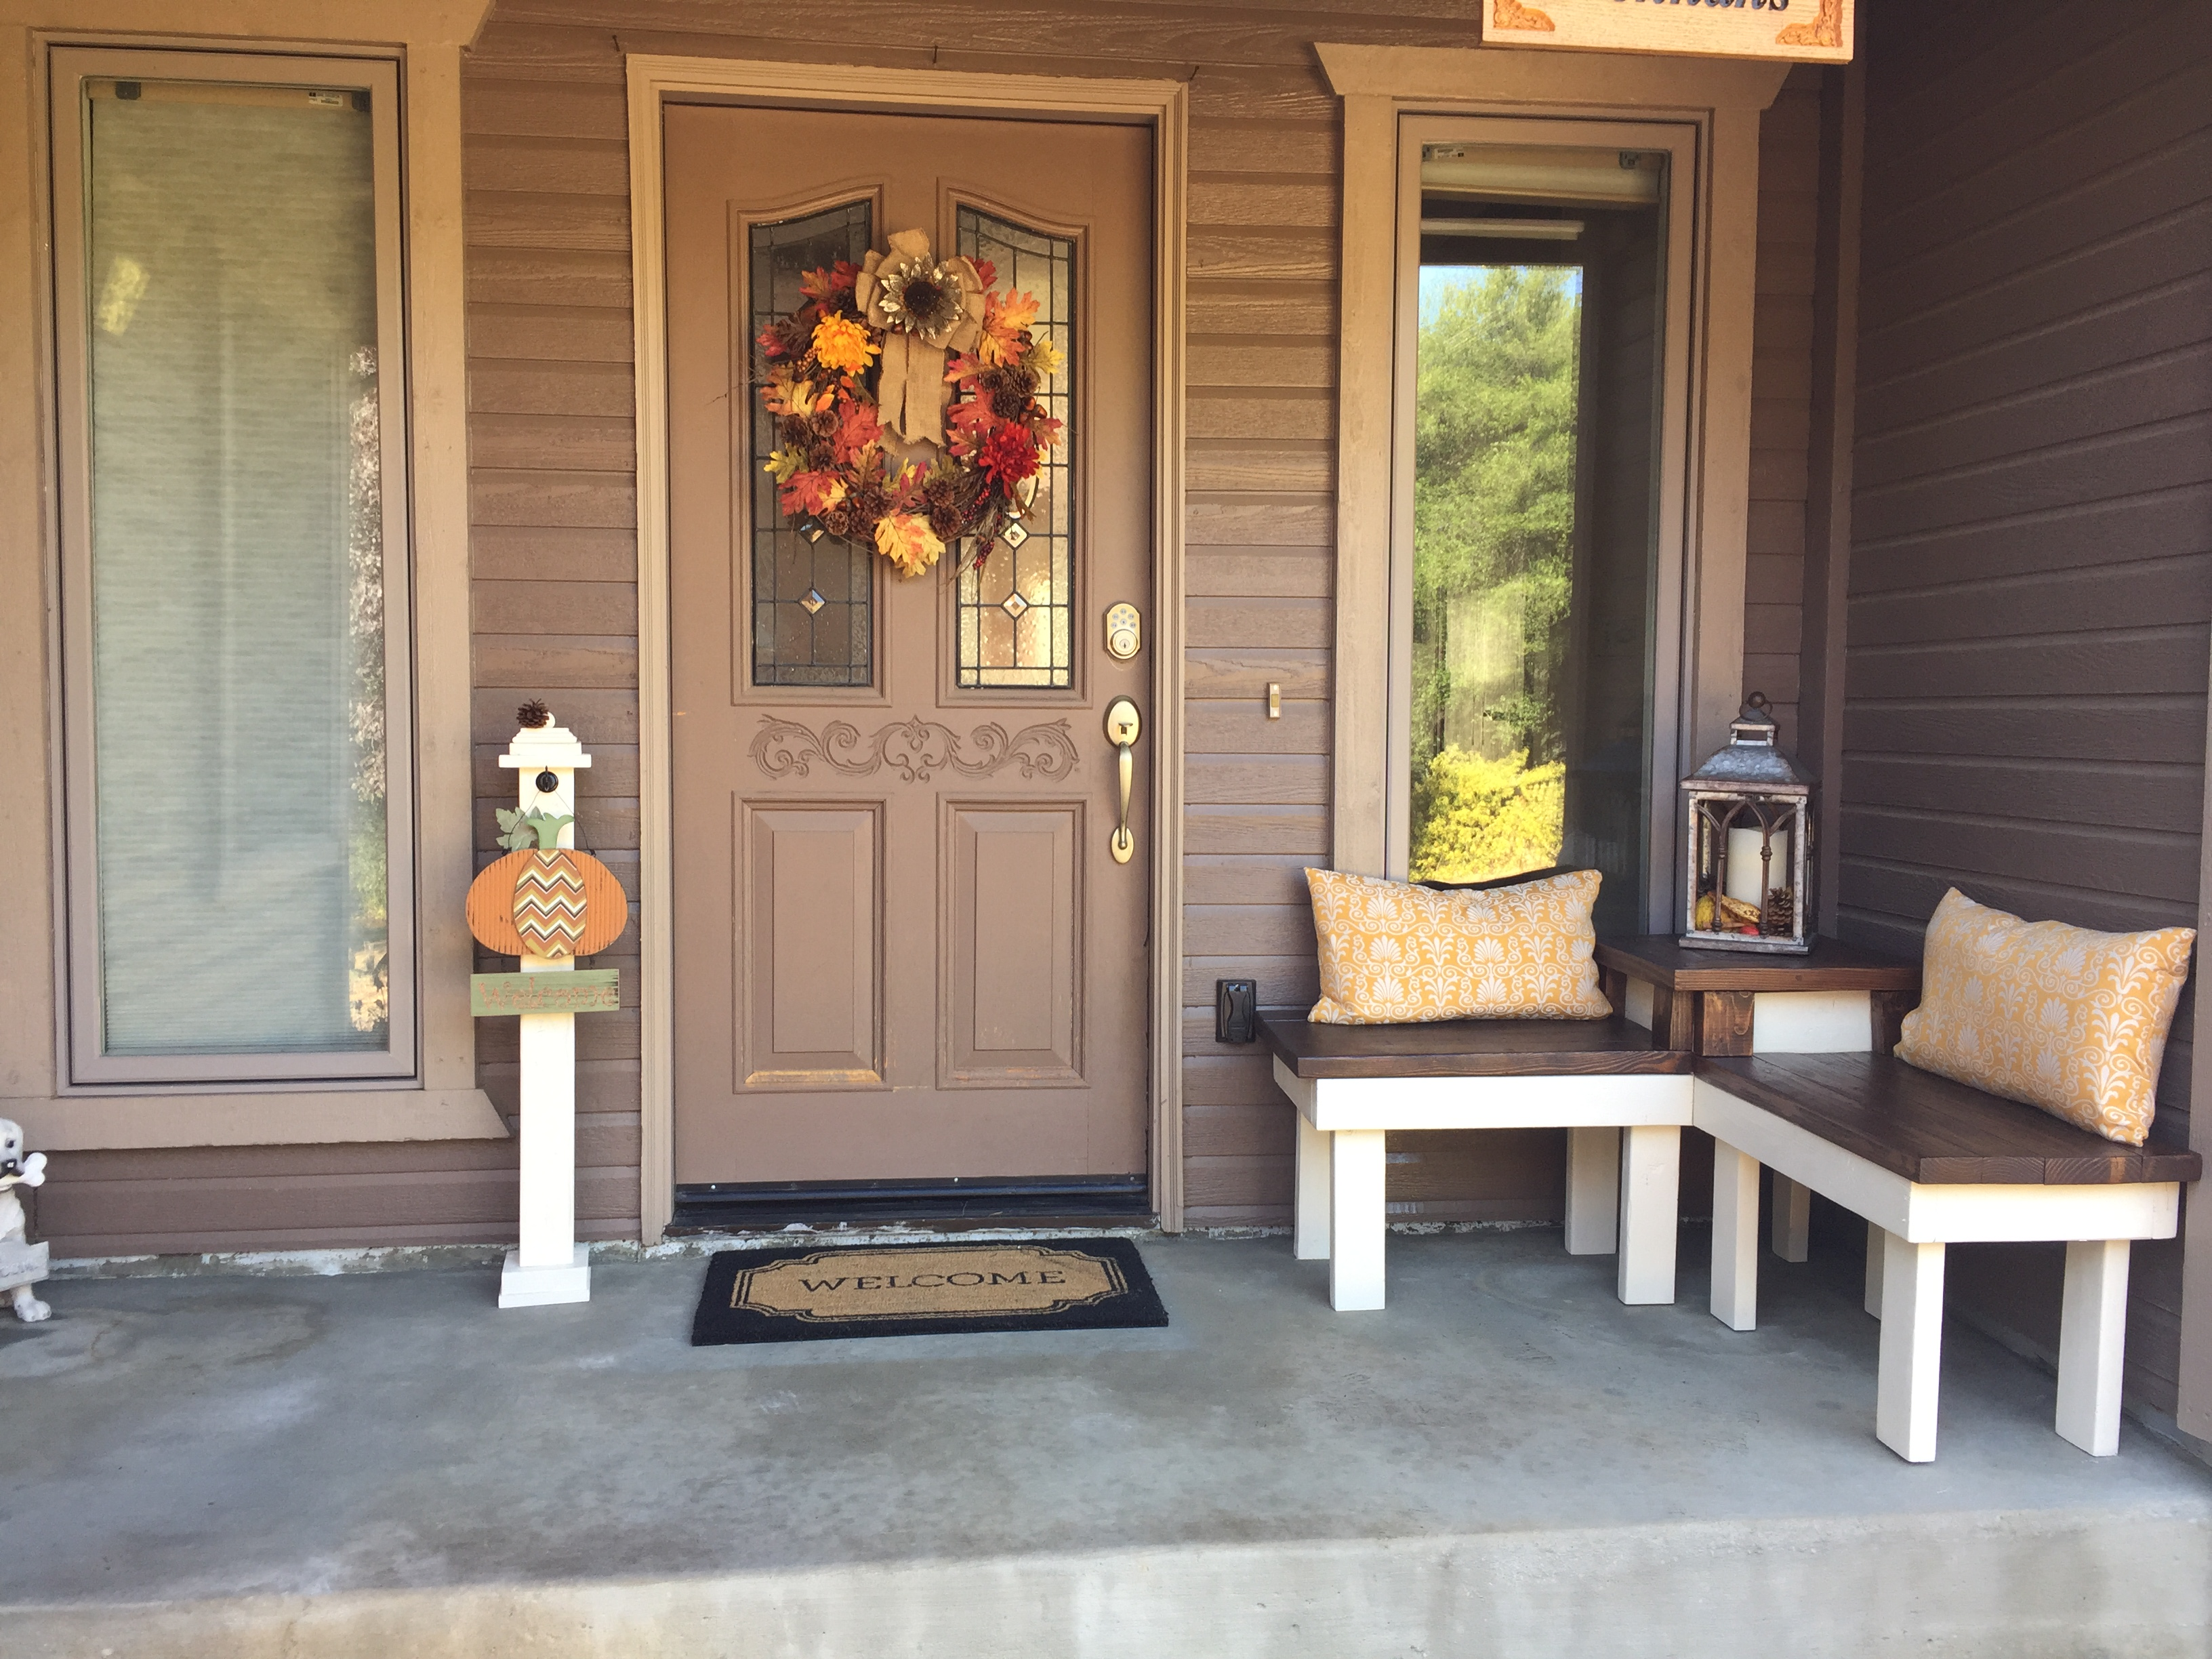 Remodelaholic build a corner bench with built in table front porch with diy corner bench pinspiration mommy featured on remodelaholic solutioingenieria Image collections